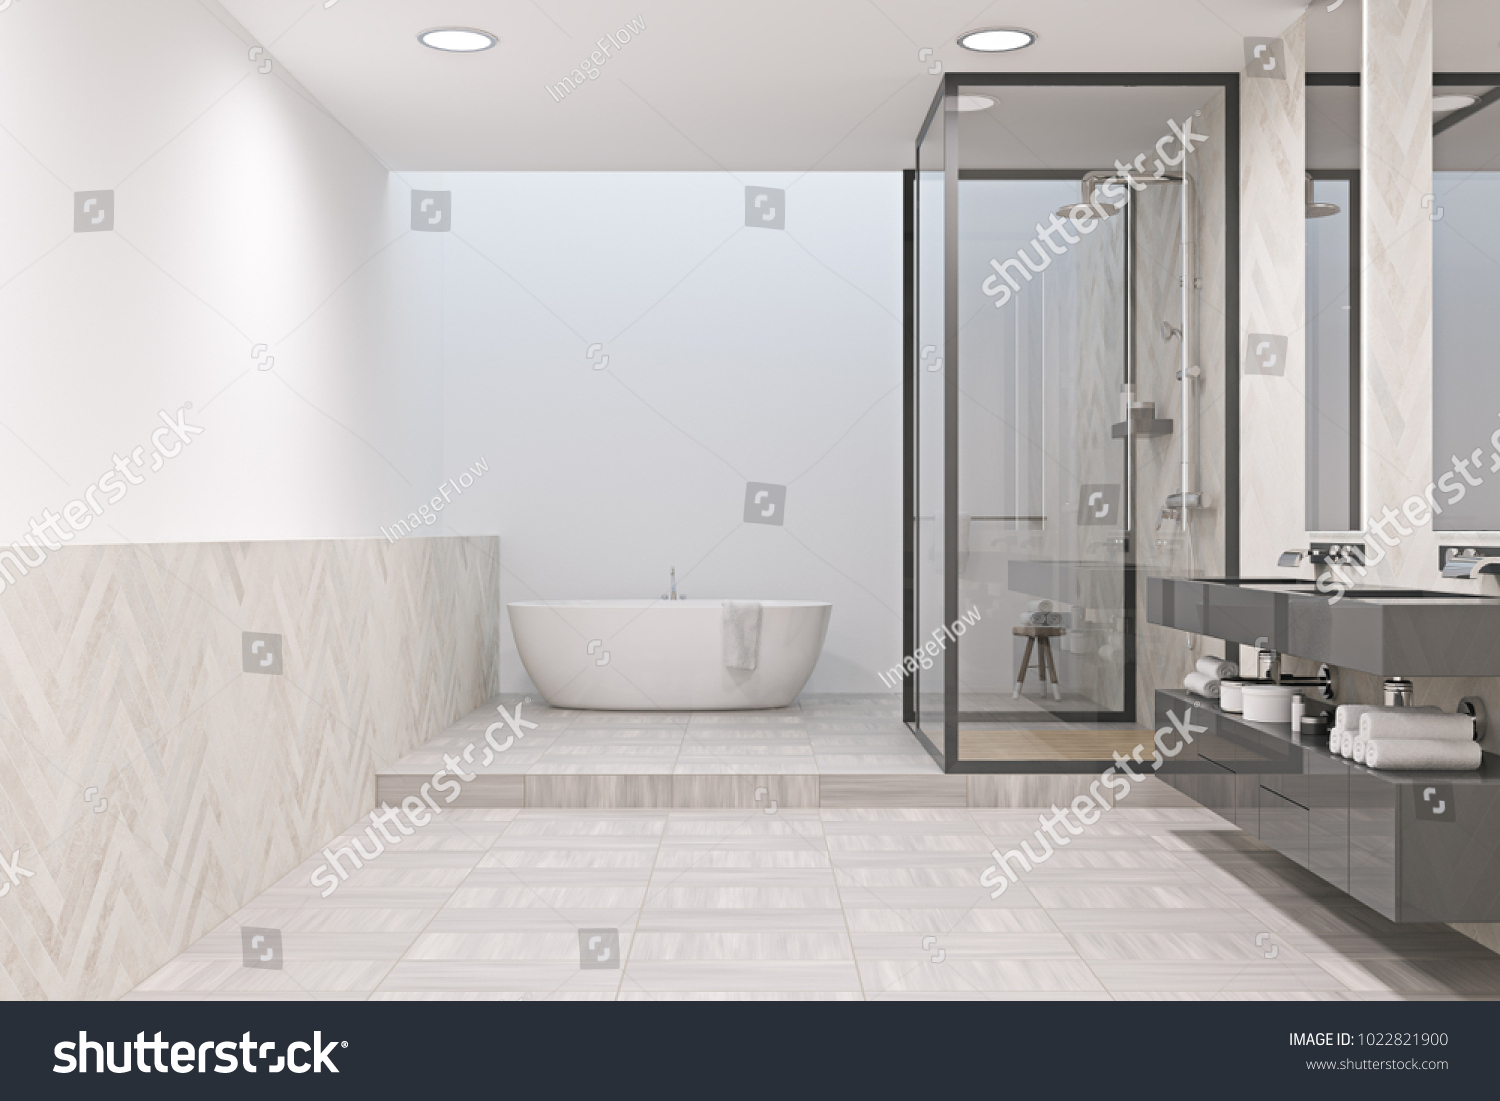 White bathroom interior with a tiled floor, a white tub, a shower ...